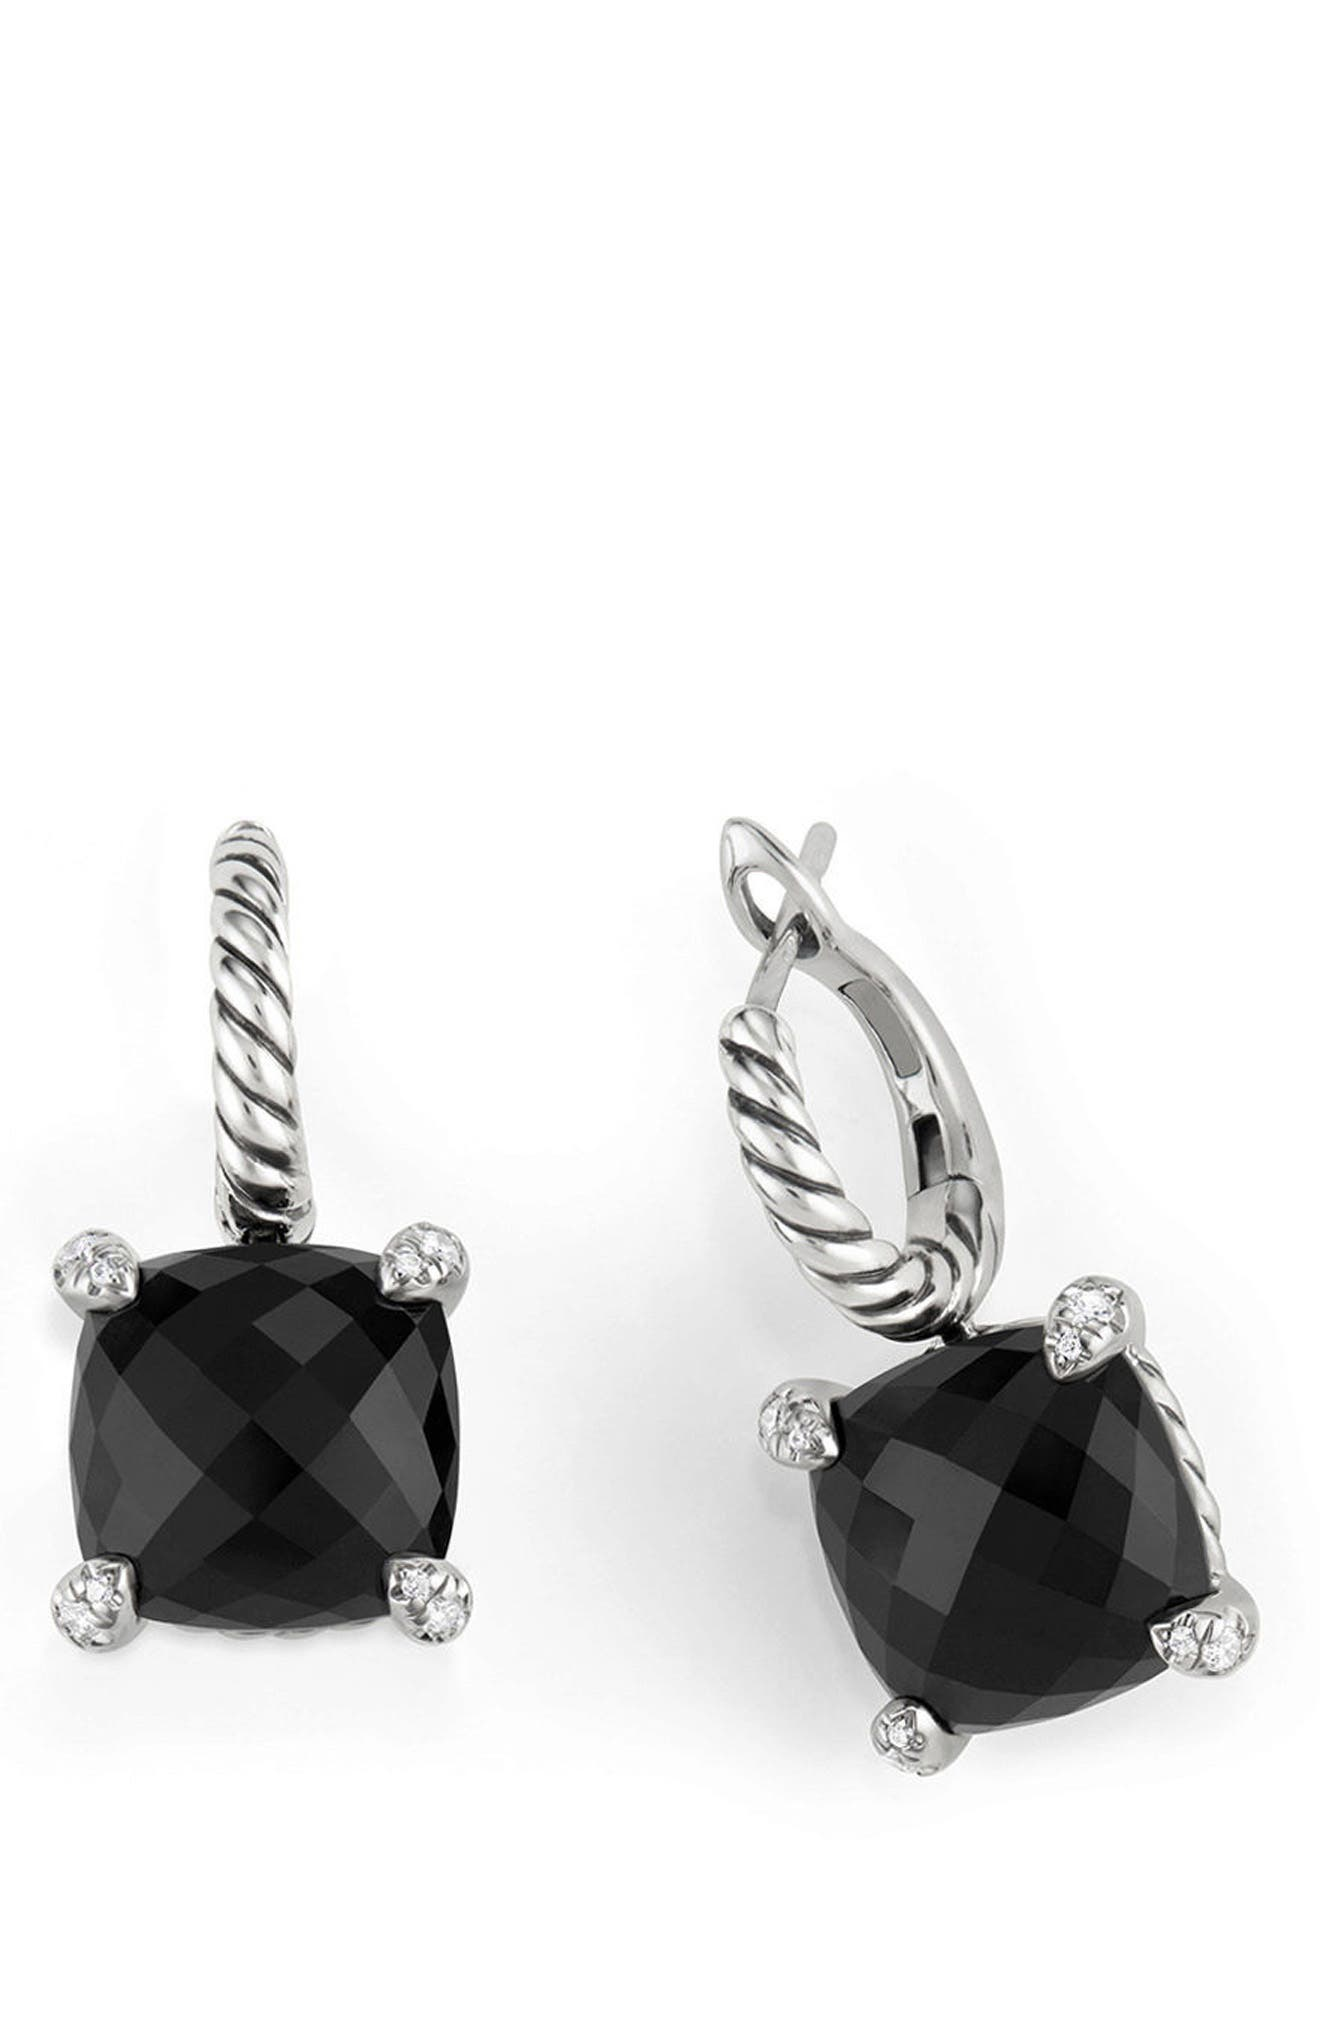 Châtelaine Drop Earrings with Diamonds,                         Main,                         color, BLACK ONYX?